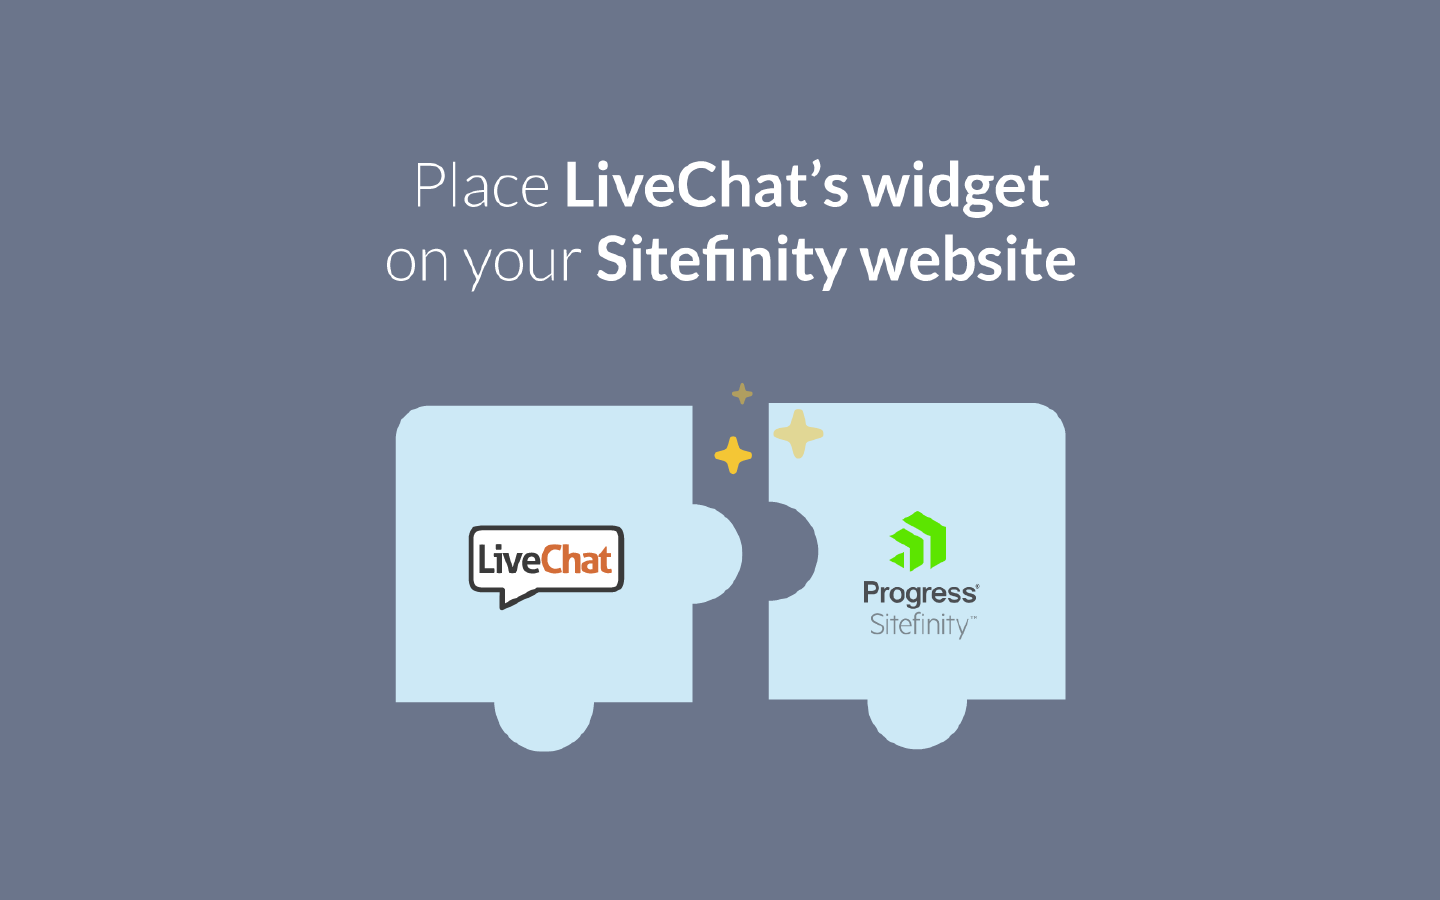 Sign In with your LiveChat account to enable chat. No code needed.